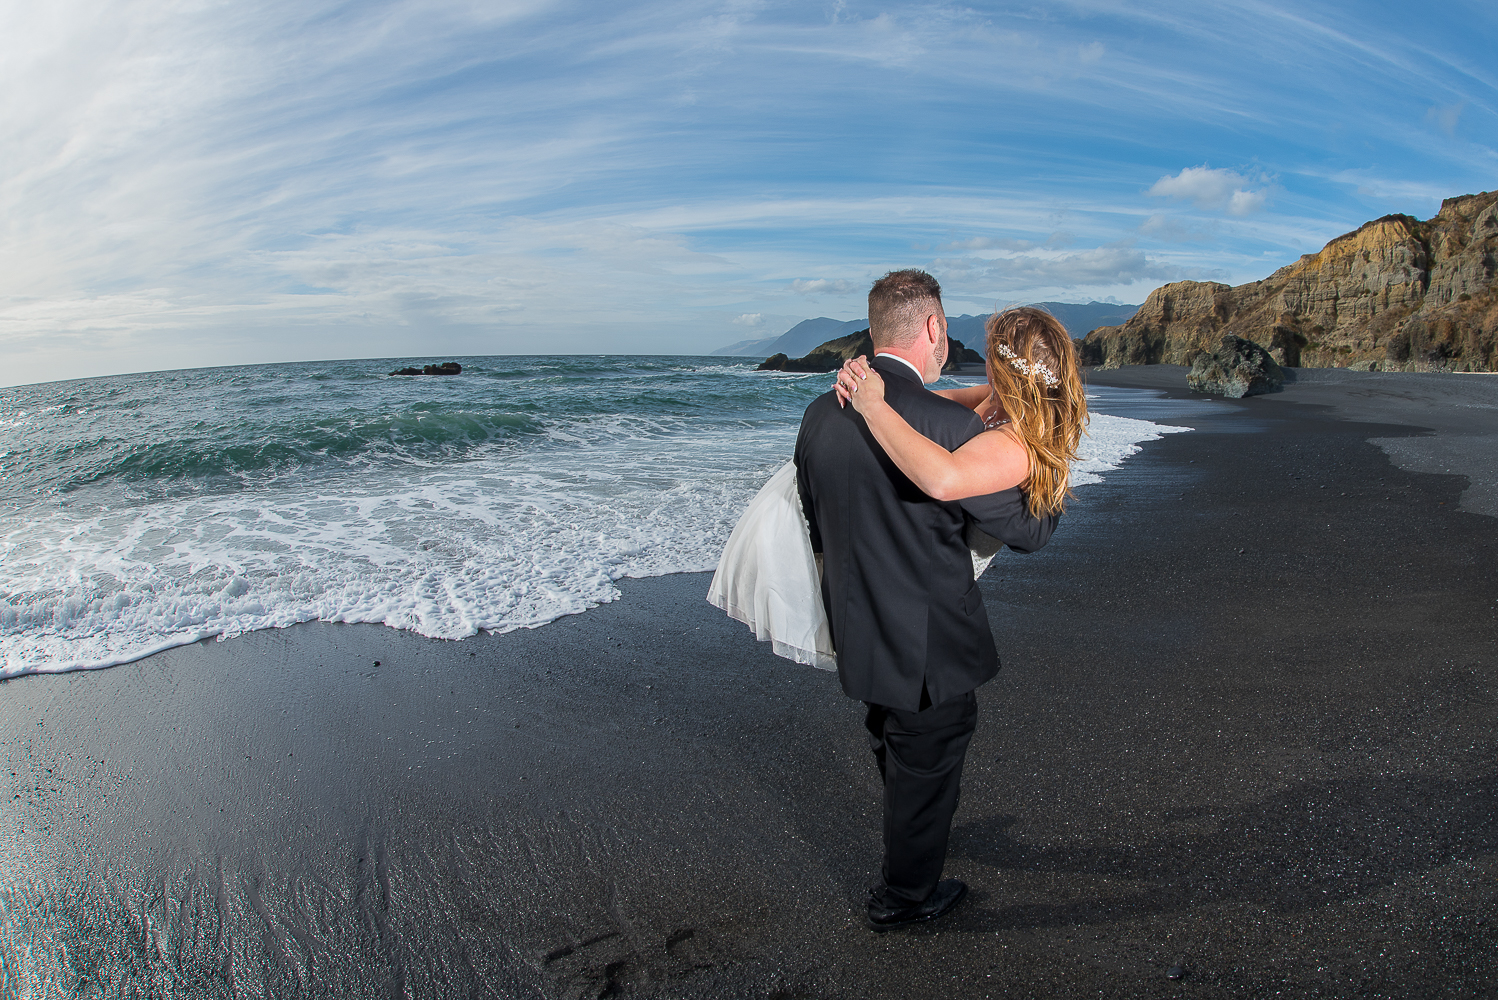 Shelter Cove-Intimate Destination beach Wedding-Parky's Pics Photography-Humboldt County_-39.jpg